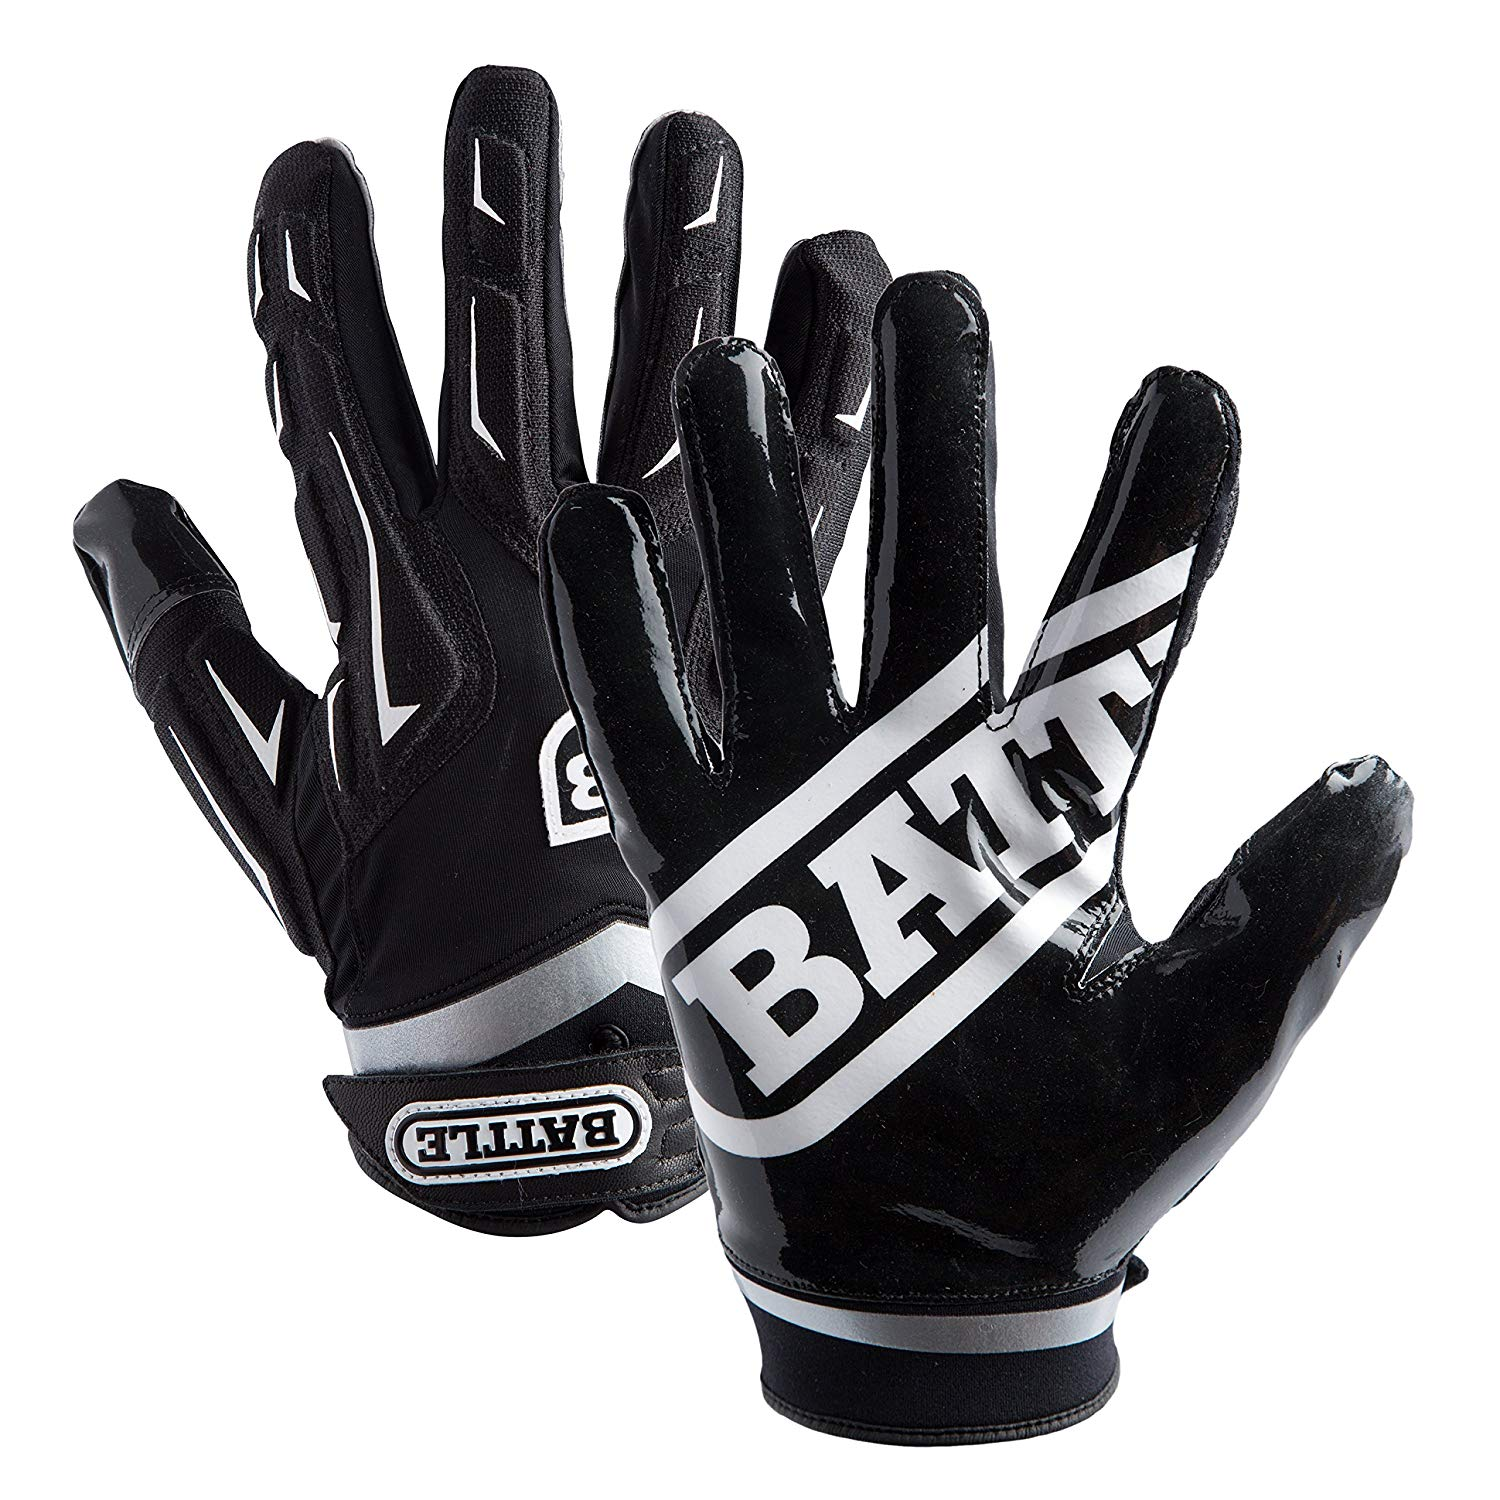 Battle Adult Hybrid Gloves, Black, Medium